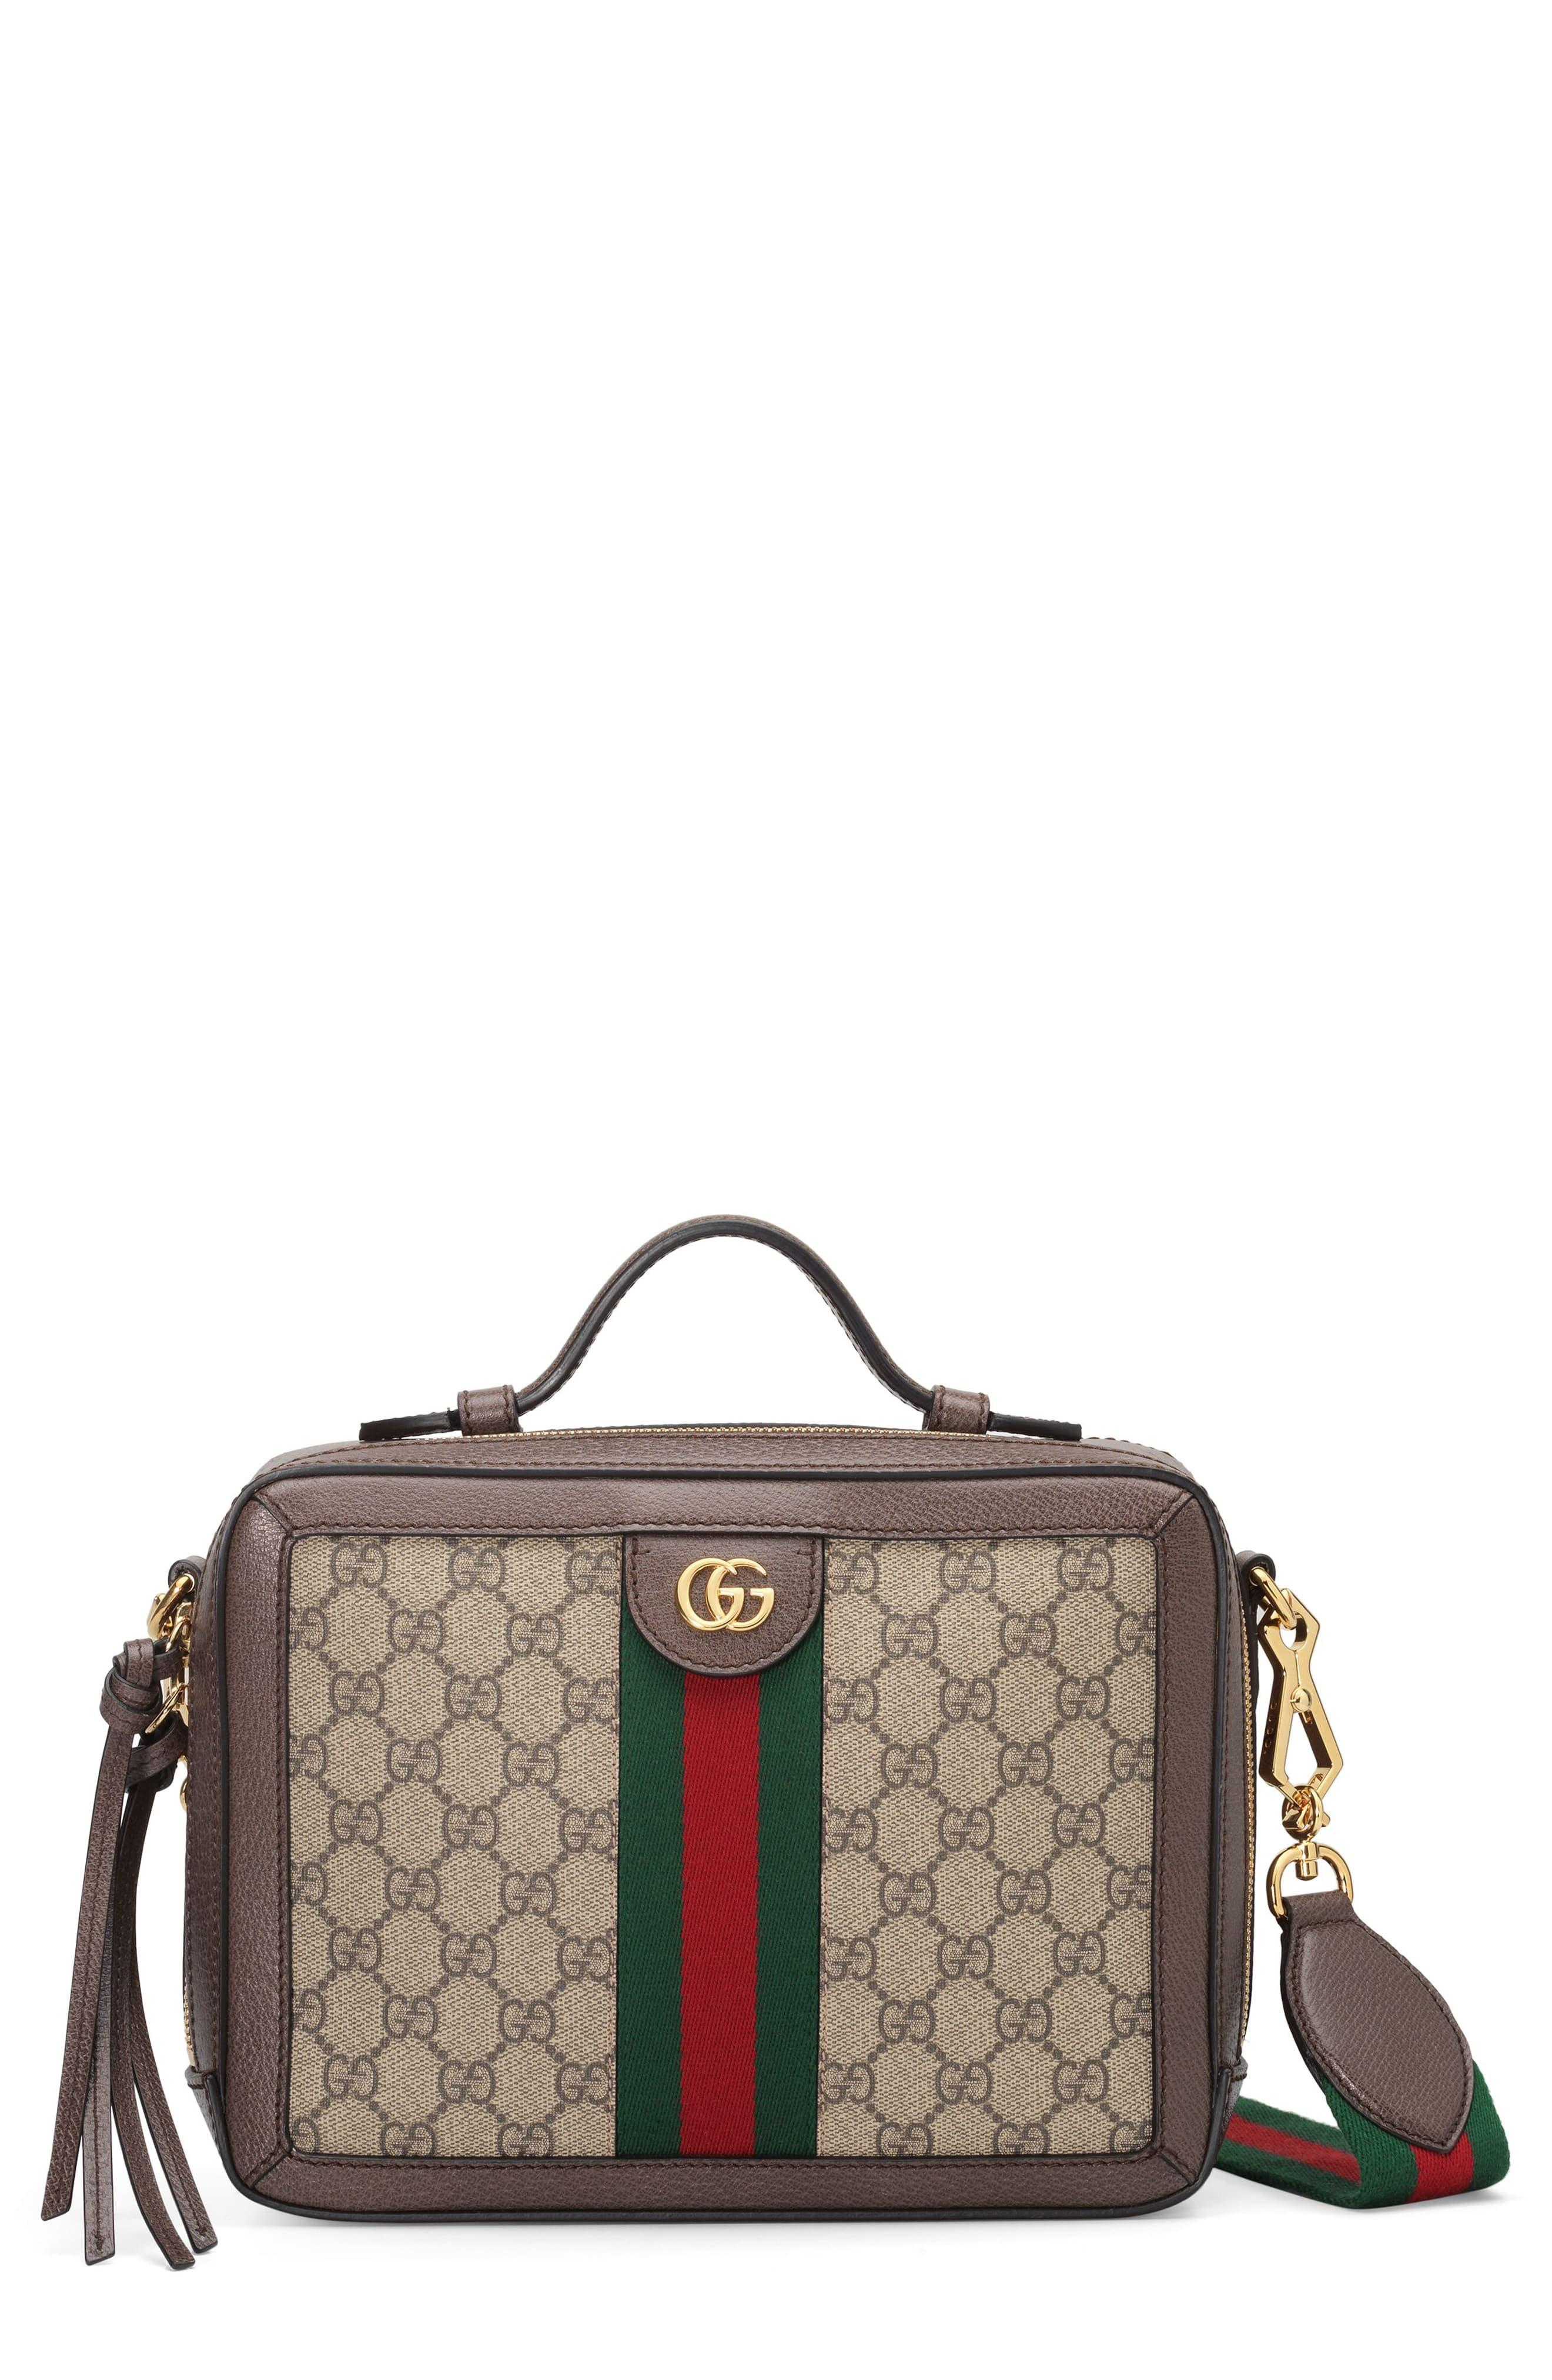 89985b96f06d Gucci Small Ophidia Gg Supreme Canvas Shoulder Bag - in Brown - Lyst